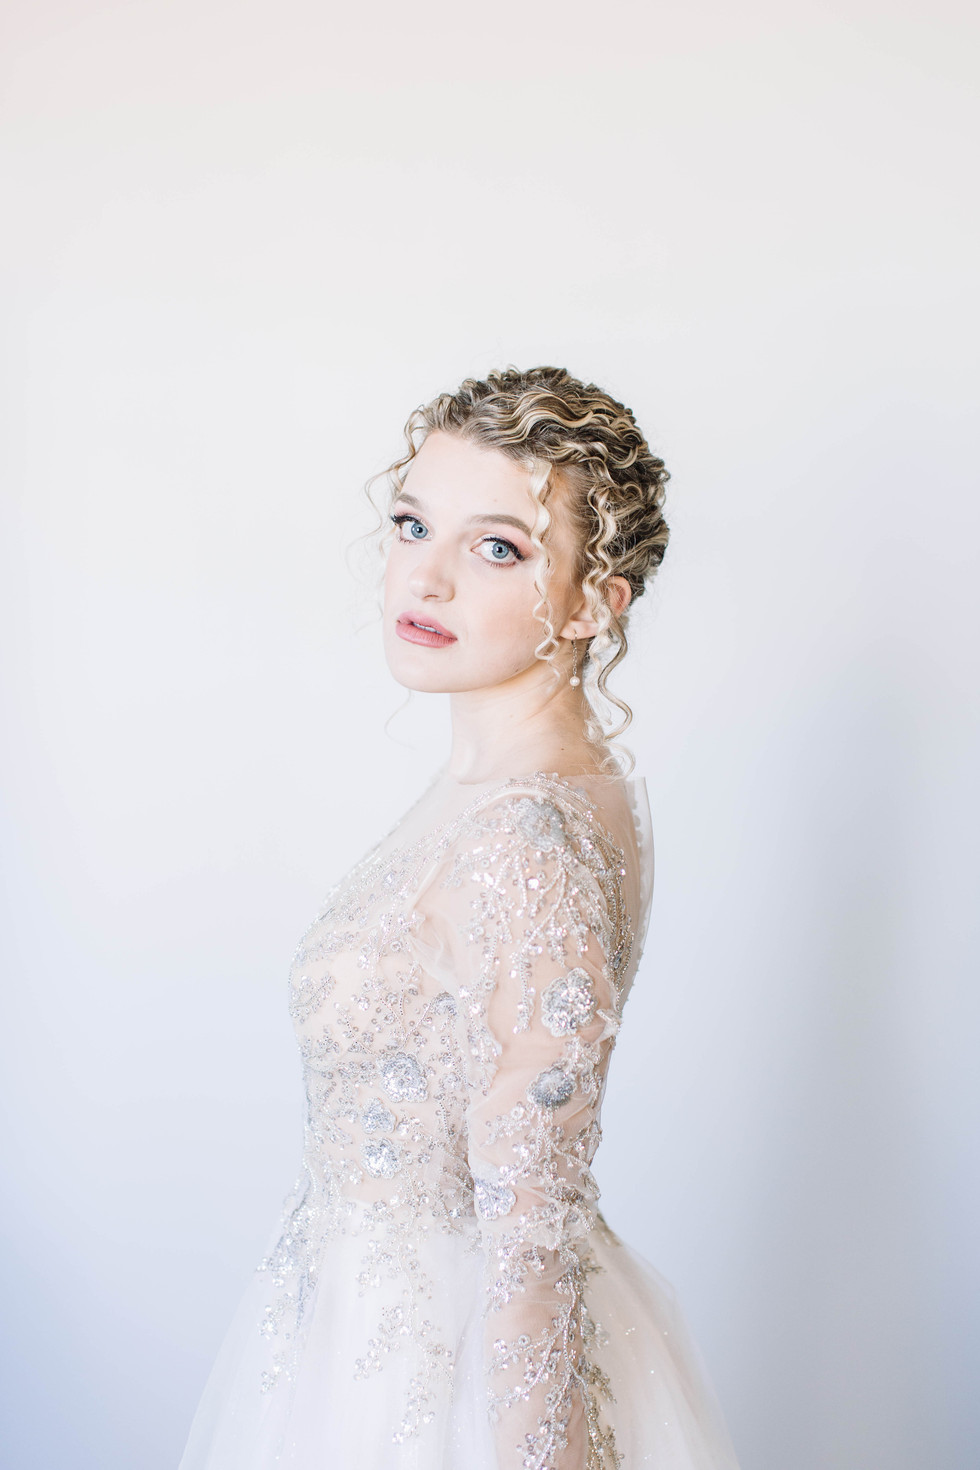 Styled Bridal Shoot - Cinderella Bride - Jazz Davis